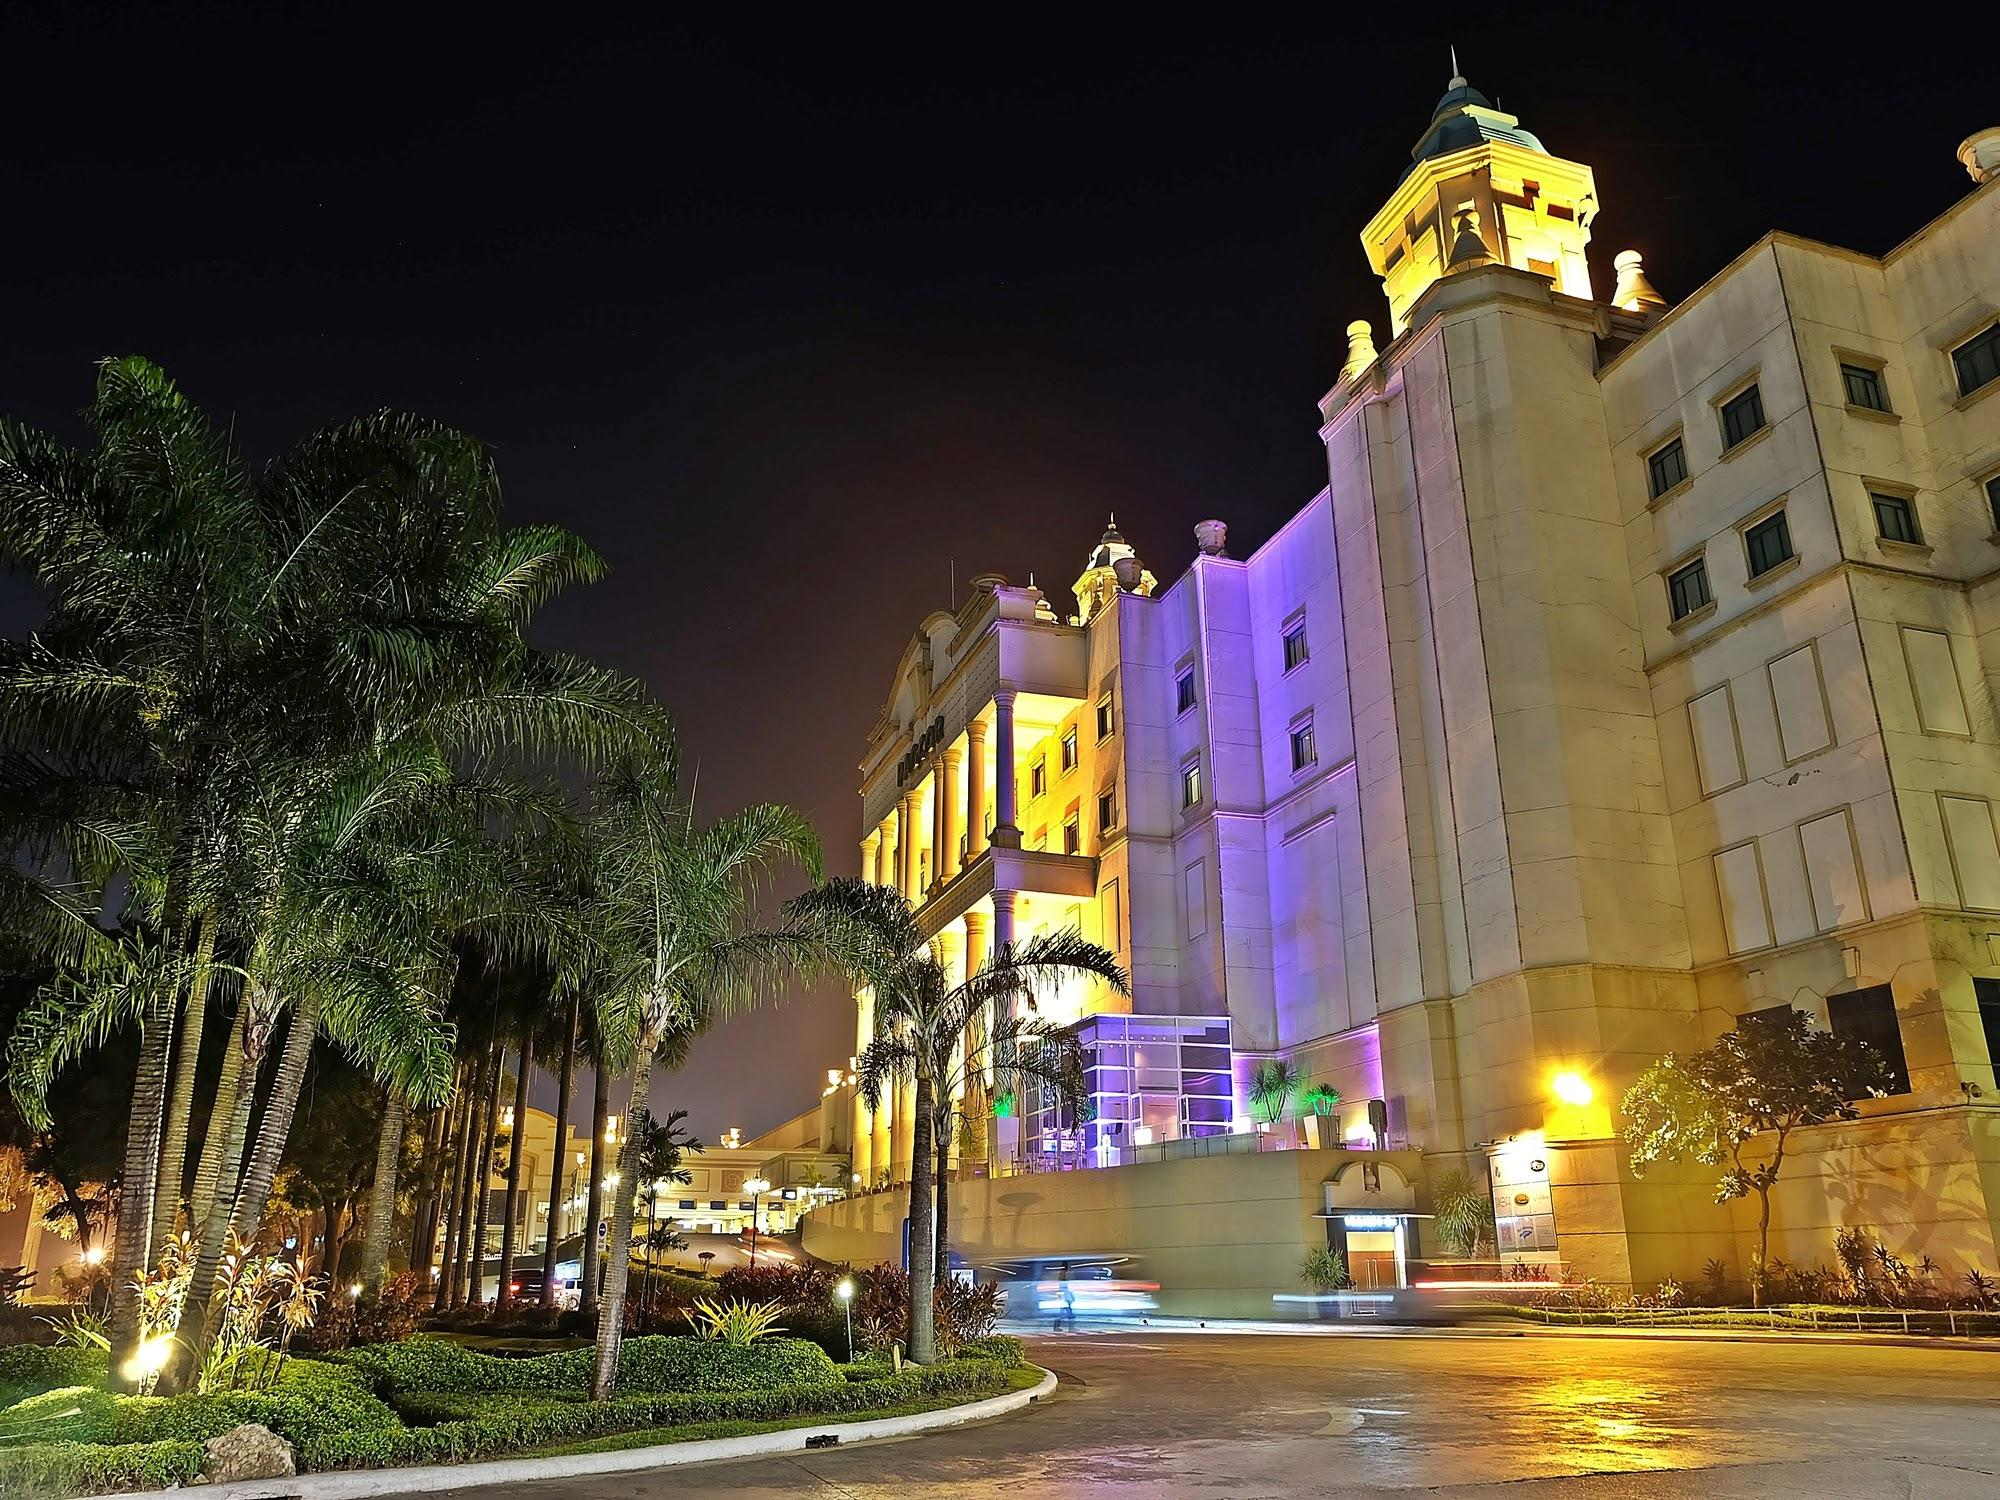 Waterfront Cebu City Hotel and Casino सेबू